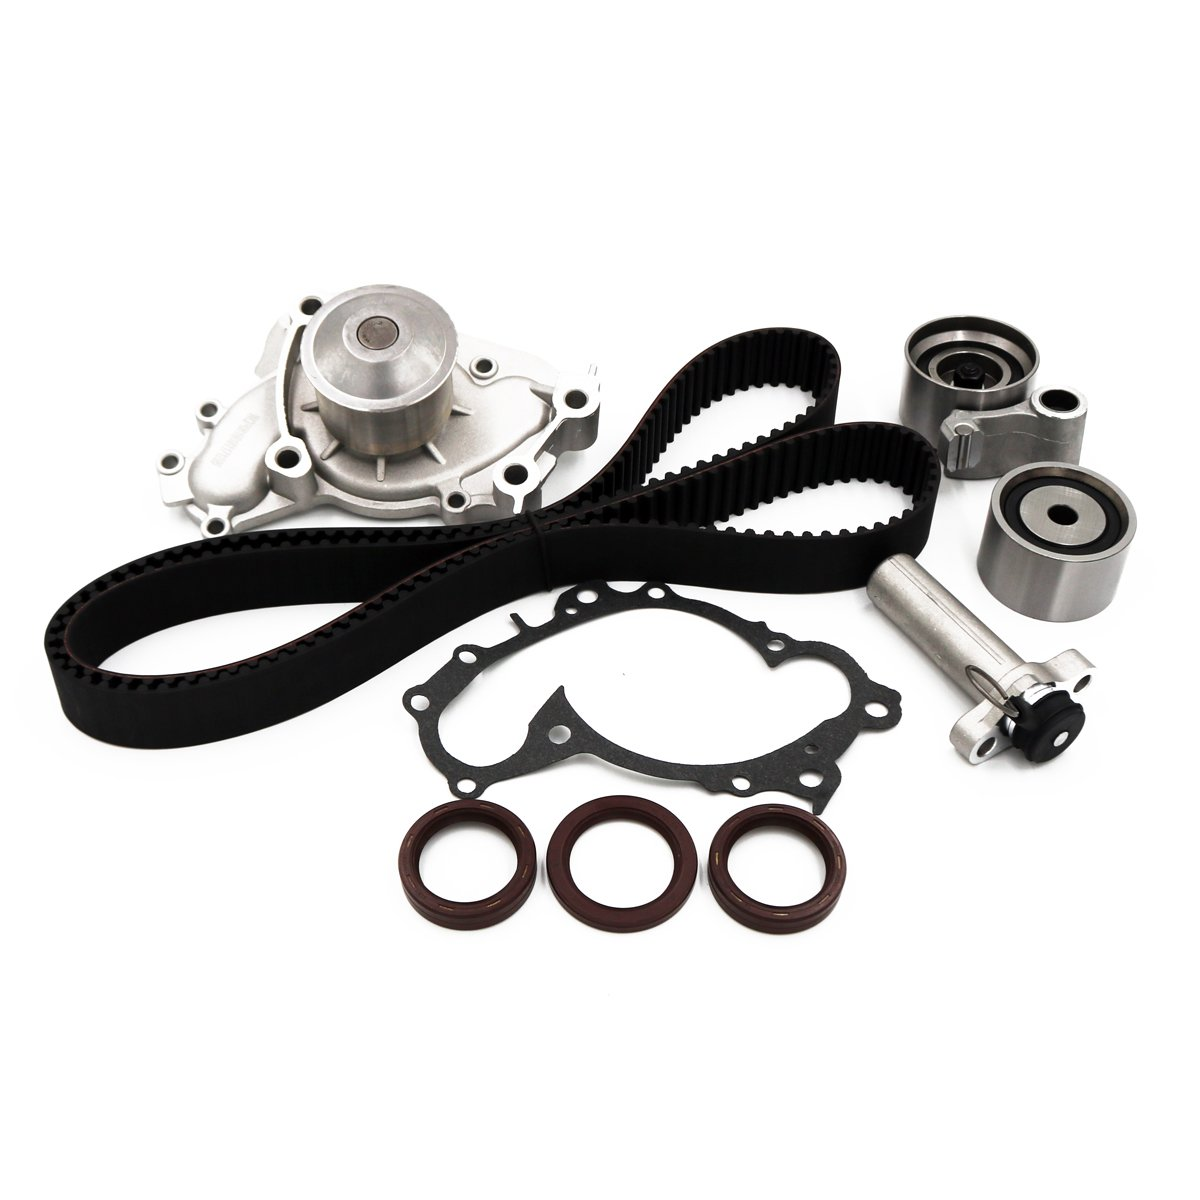 WQ Fits 1994-2004 Toyota Camry Avalon Sienna Solara Lexus ES300 RX300 3.0L V6 DOHC 24 Valve 1MZFE Engine Timing Belt Water Pump Kit JH AUTO PARTS TBK257 WP2033 TS26257 ITM257